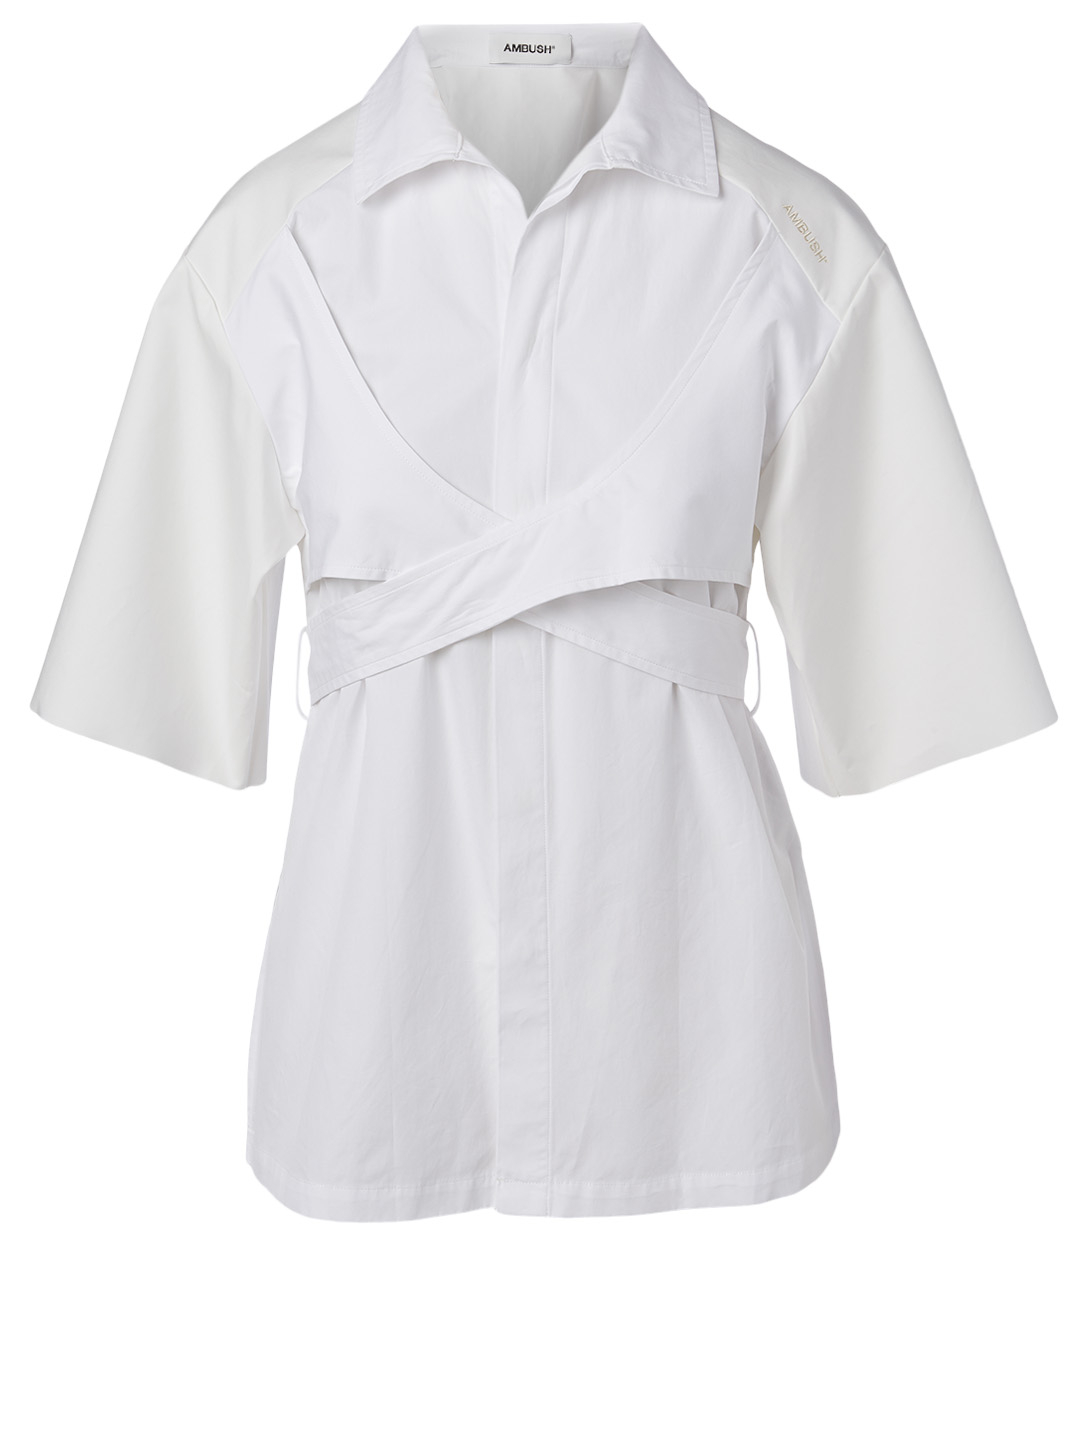 AMBUSH Cotton Wrap Tie Shirt Women's White